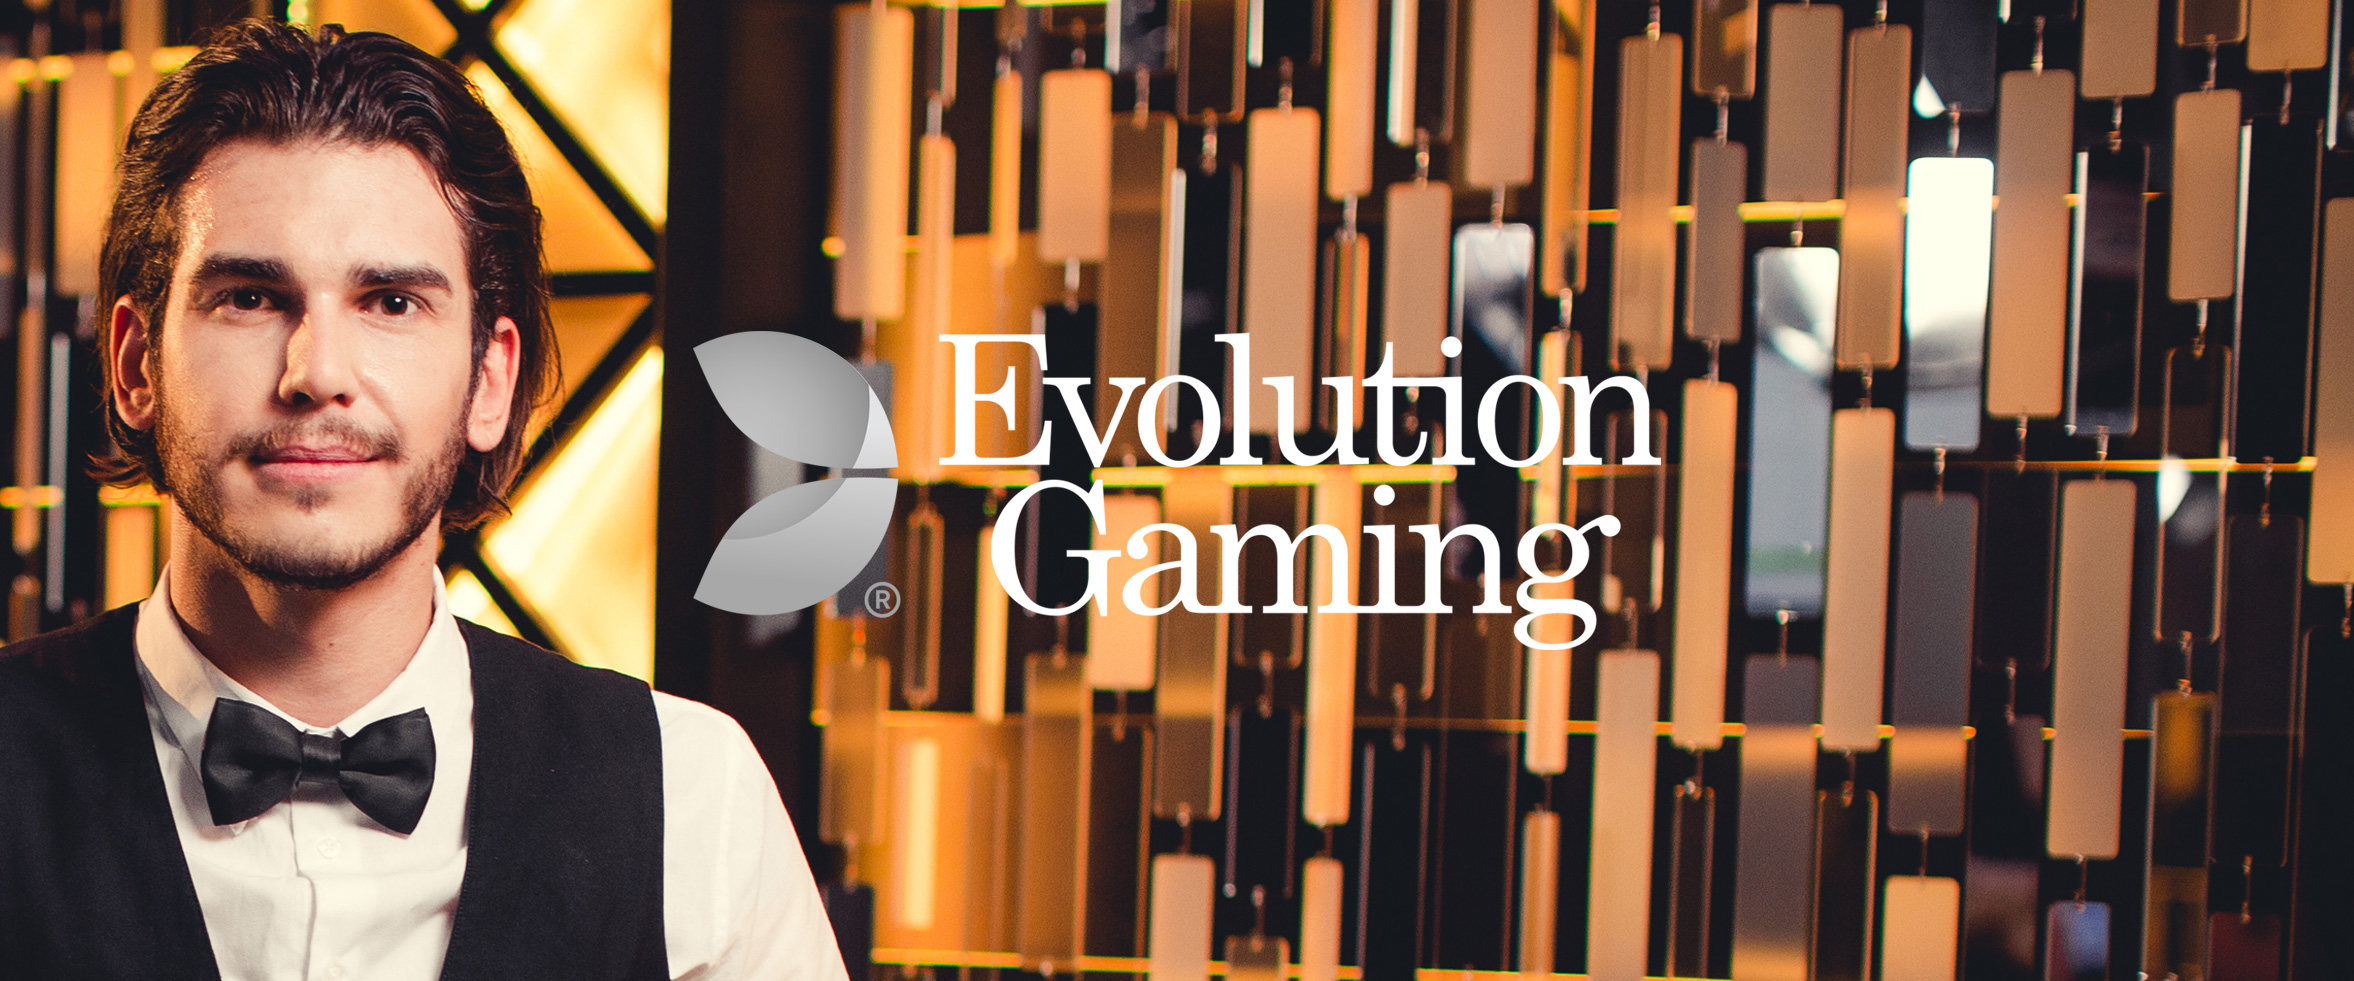 Wildz begrüßt auch Evolution Gaming bei der Party